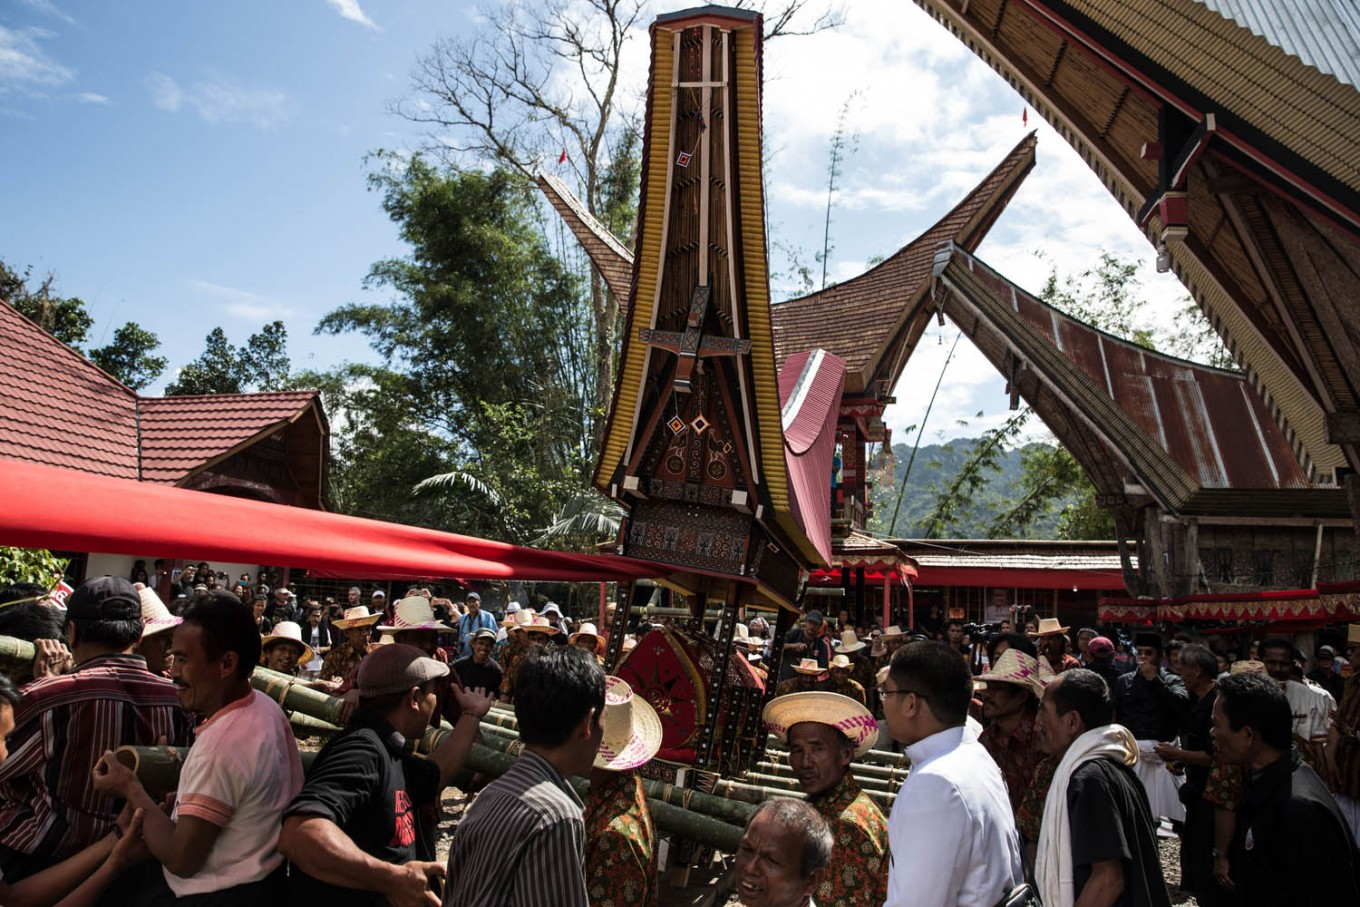 Villagers and relatives gather as they prepare for a parade called Ma' Palao during a long day carrying out a traditional funeral ceremony called Rambu Solo to commemorate the passing of V.T Sarangullo in La'Bo village, Toraja, South Sulawesi. JP/Agung Parameswara